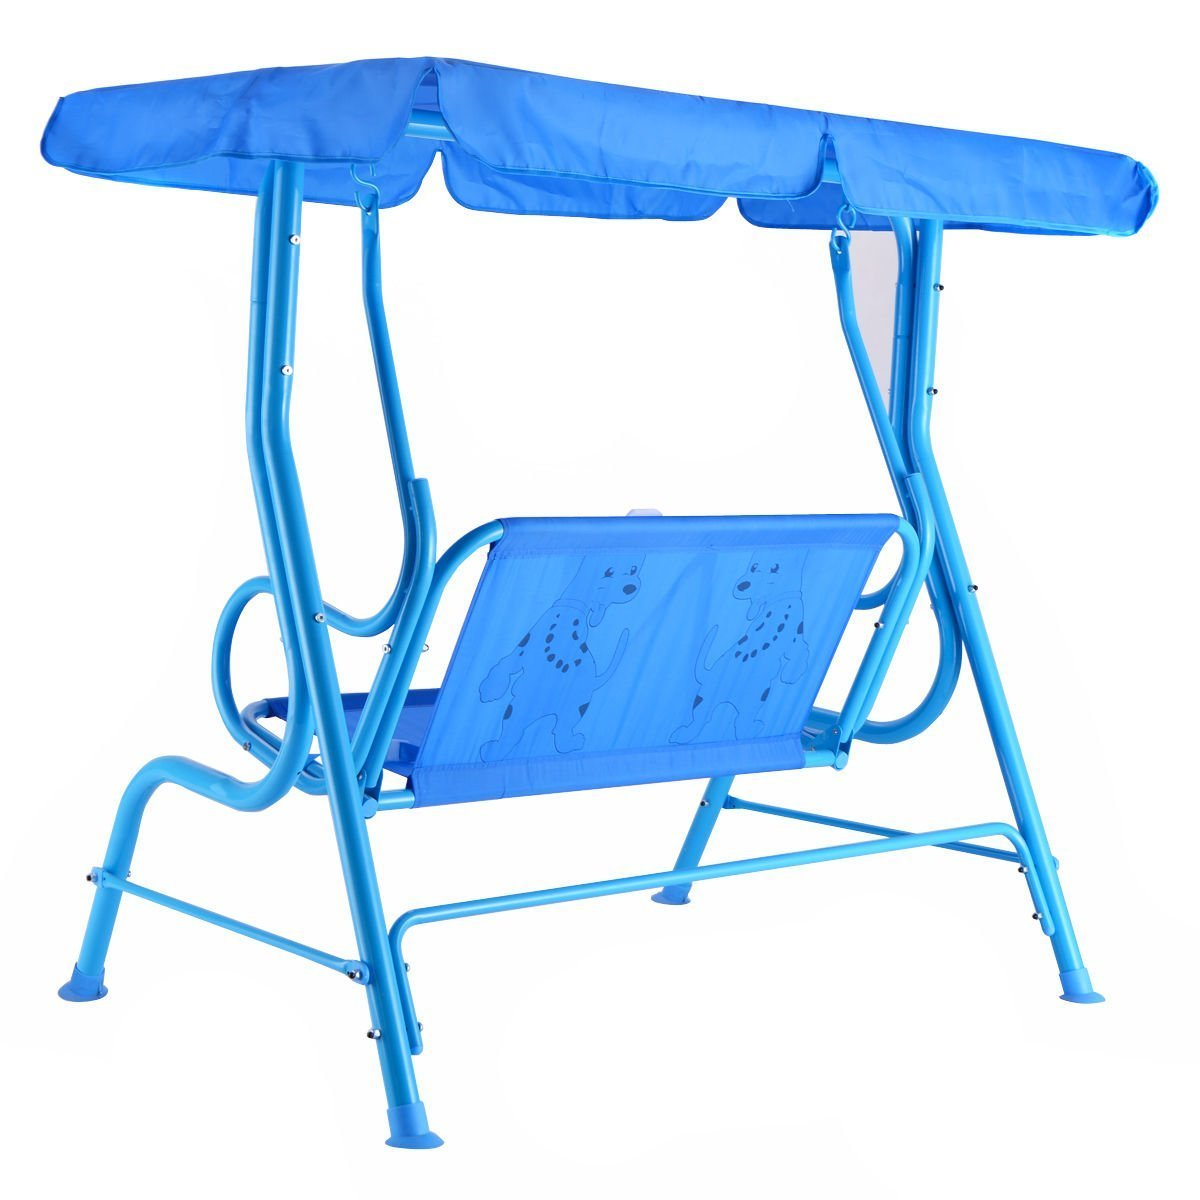 Costzon Kids Porch Swing 2 Person Patio Seat With Canopy